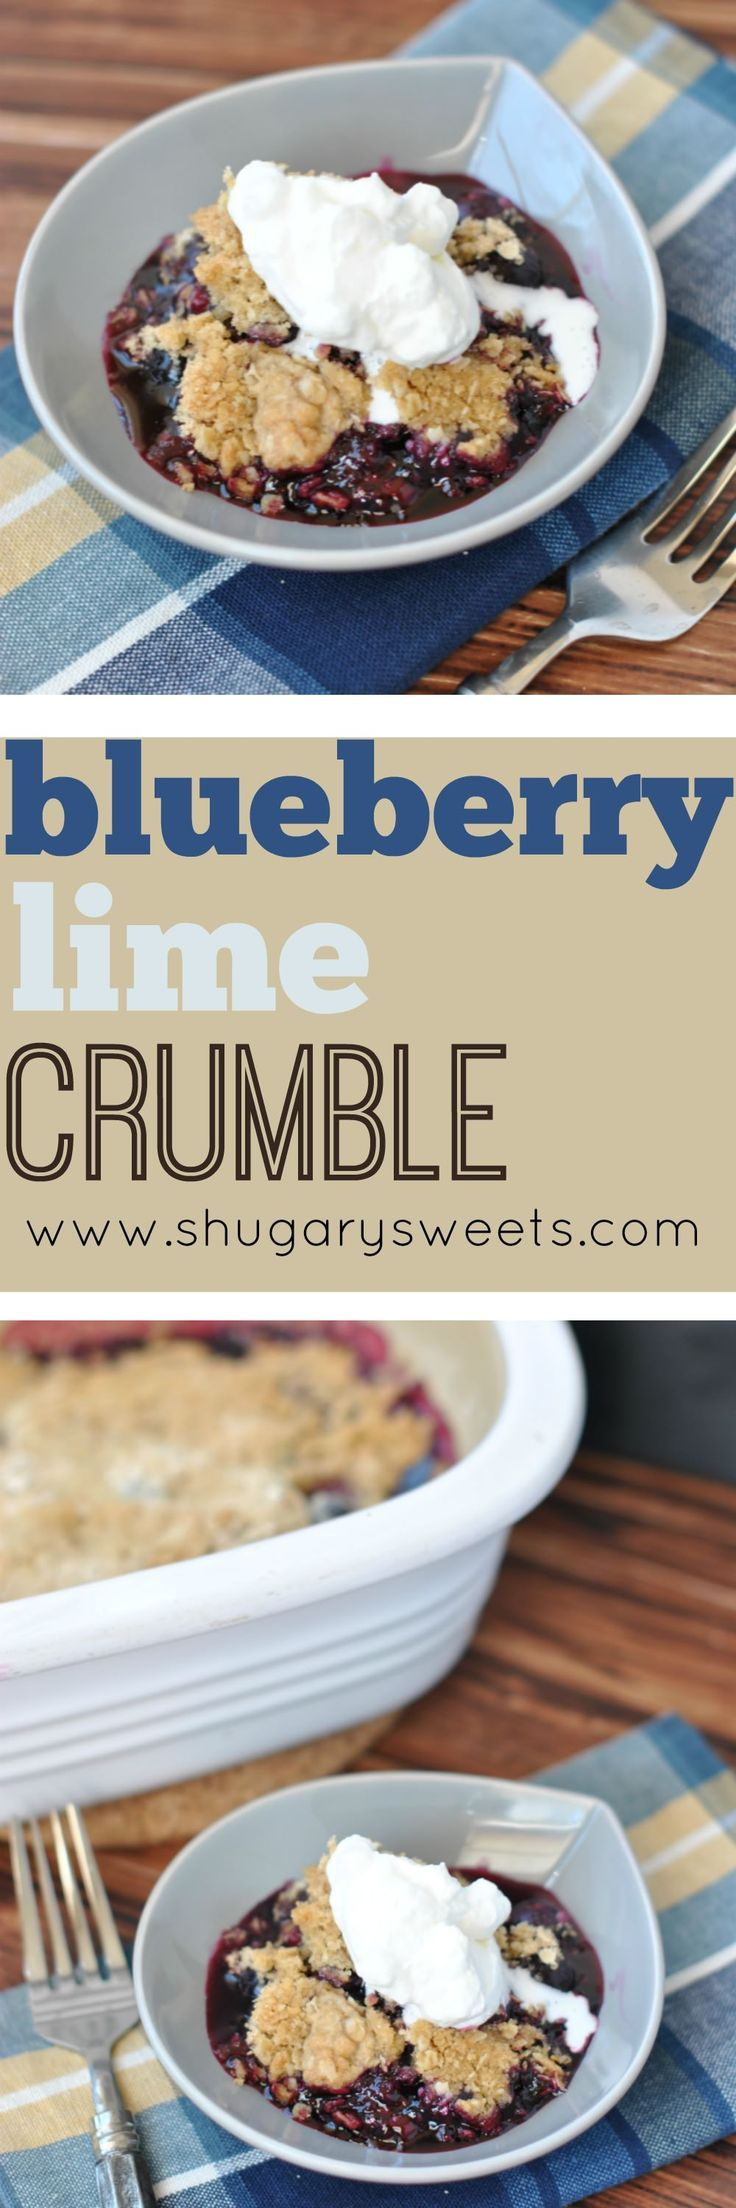 Fresh blueberries and lime create the perfect base to this Blueberry Crumble. I must admit though, it's that thick layer of crunchy sugar and oats that keeps me lifting my fork repeatedly. I served ours with homemade whipped cream, but of course ice cream is perfectly acceptable too!